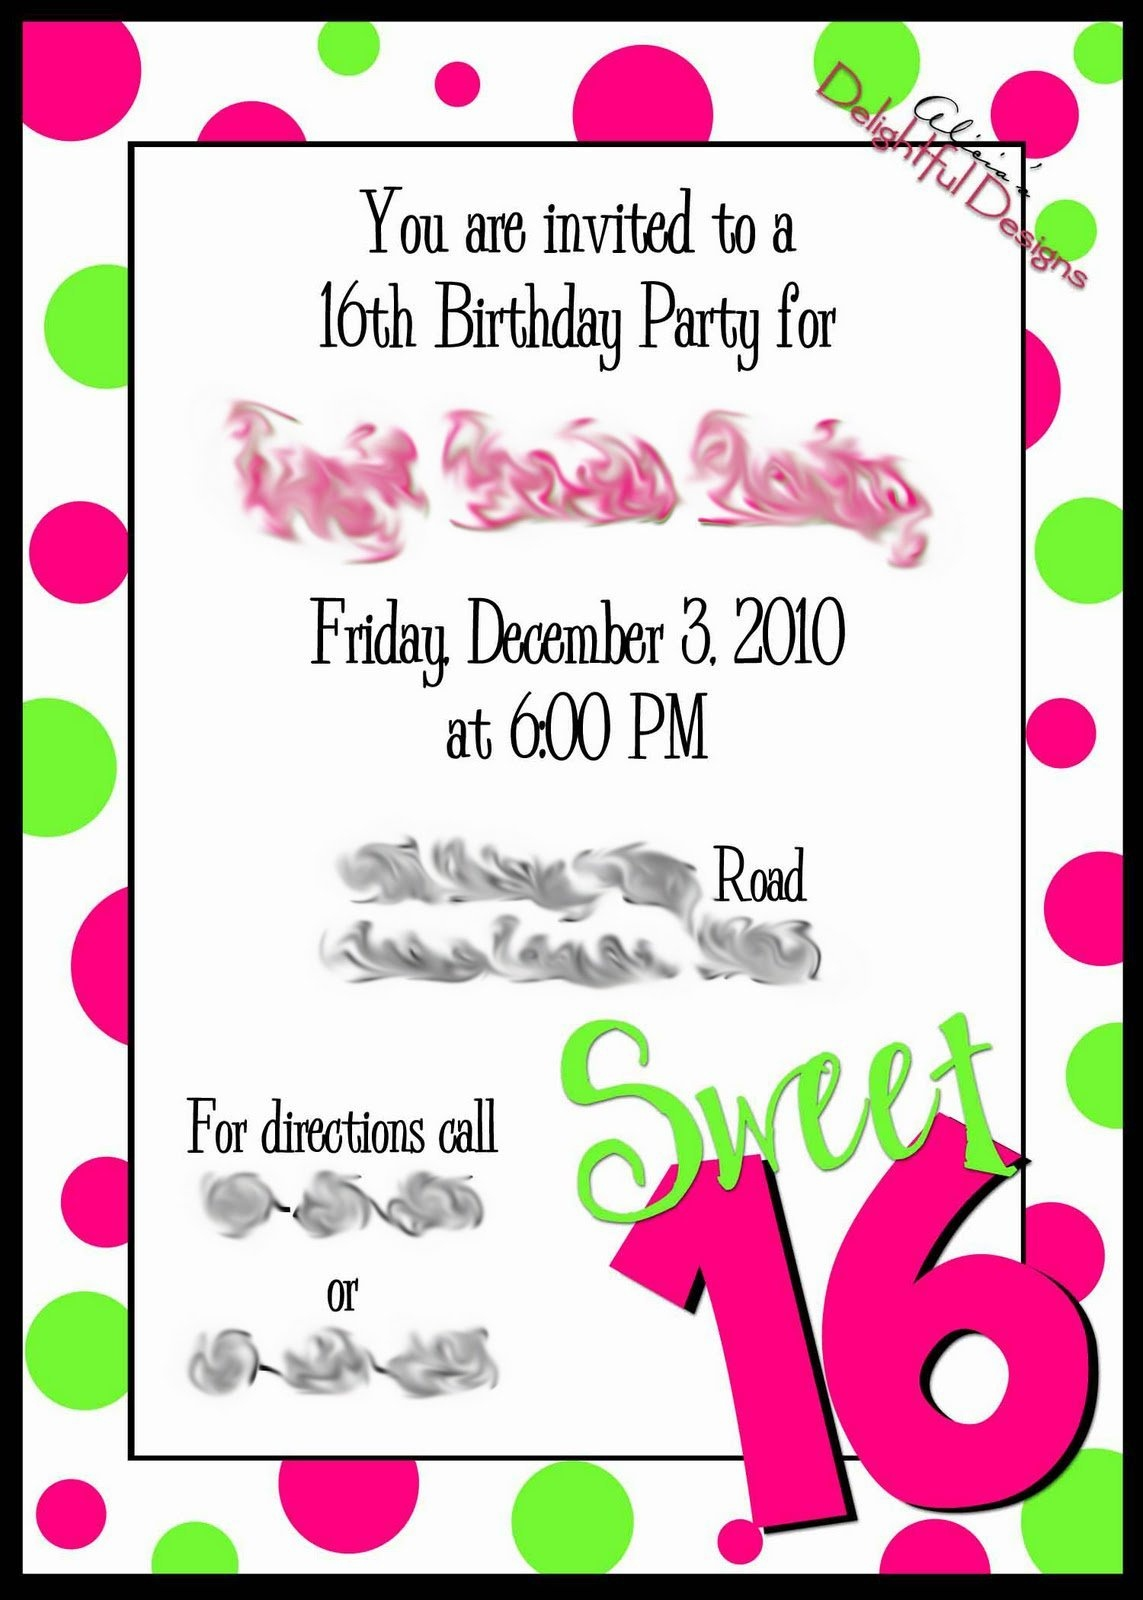 Free Printable Sweet 16 Invitations - Anarchistshemale - Free Printable Sweet 16 Birthday Party Invitations